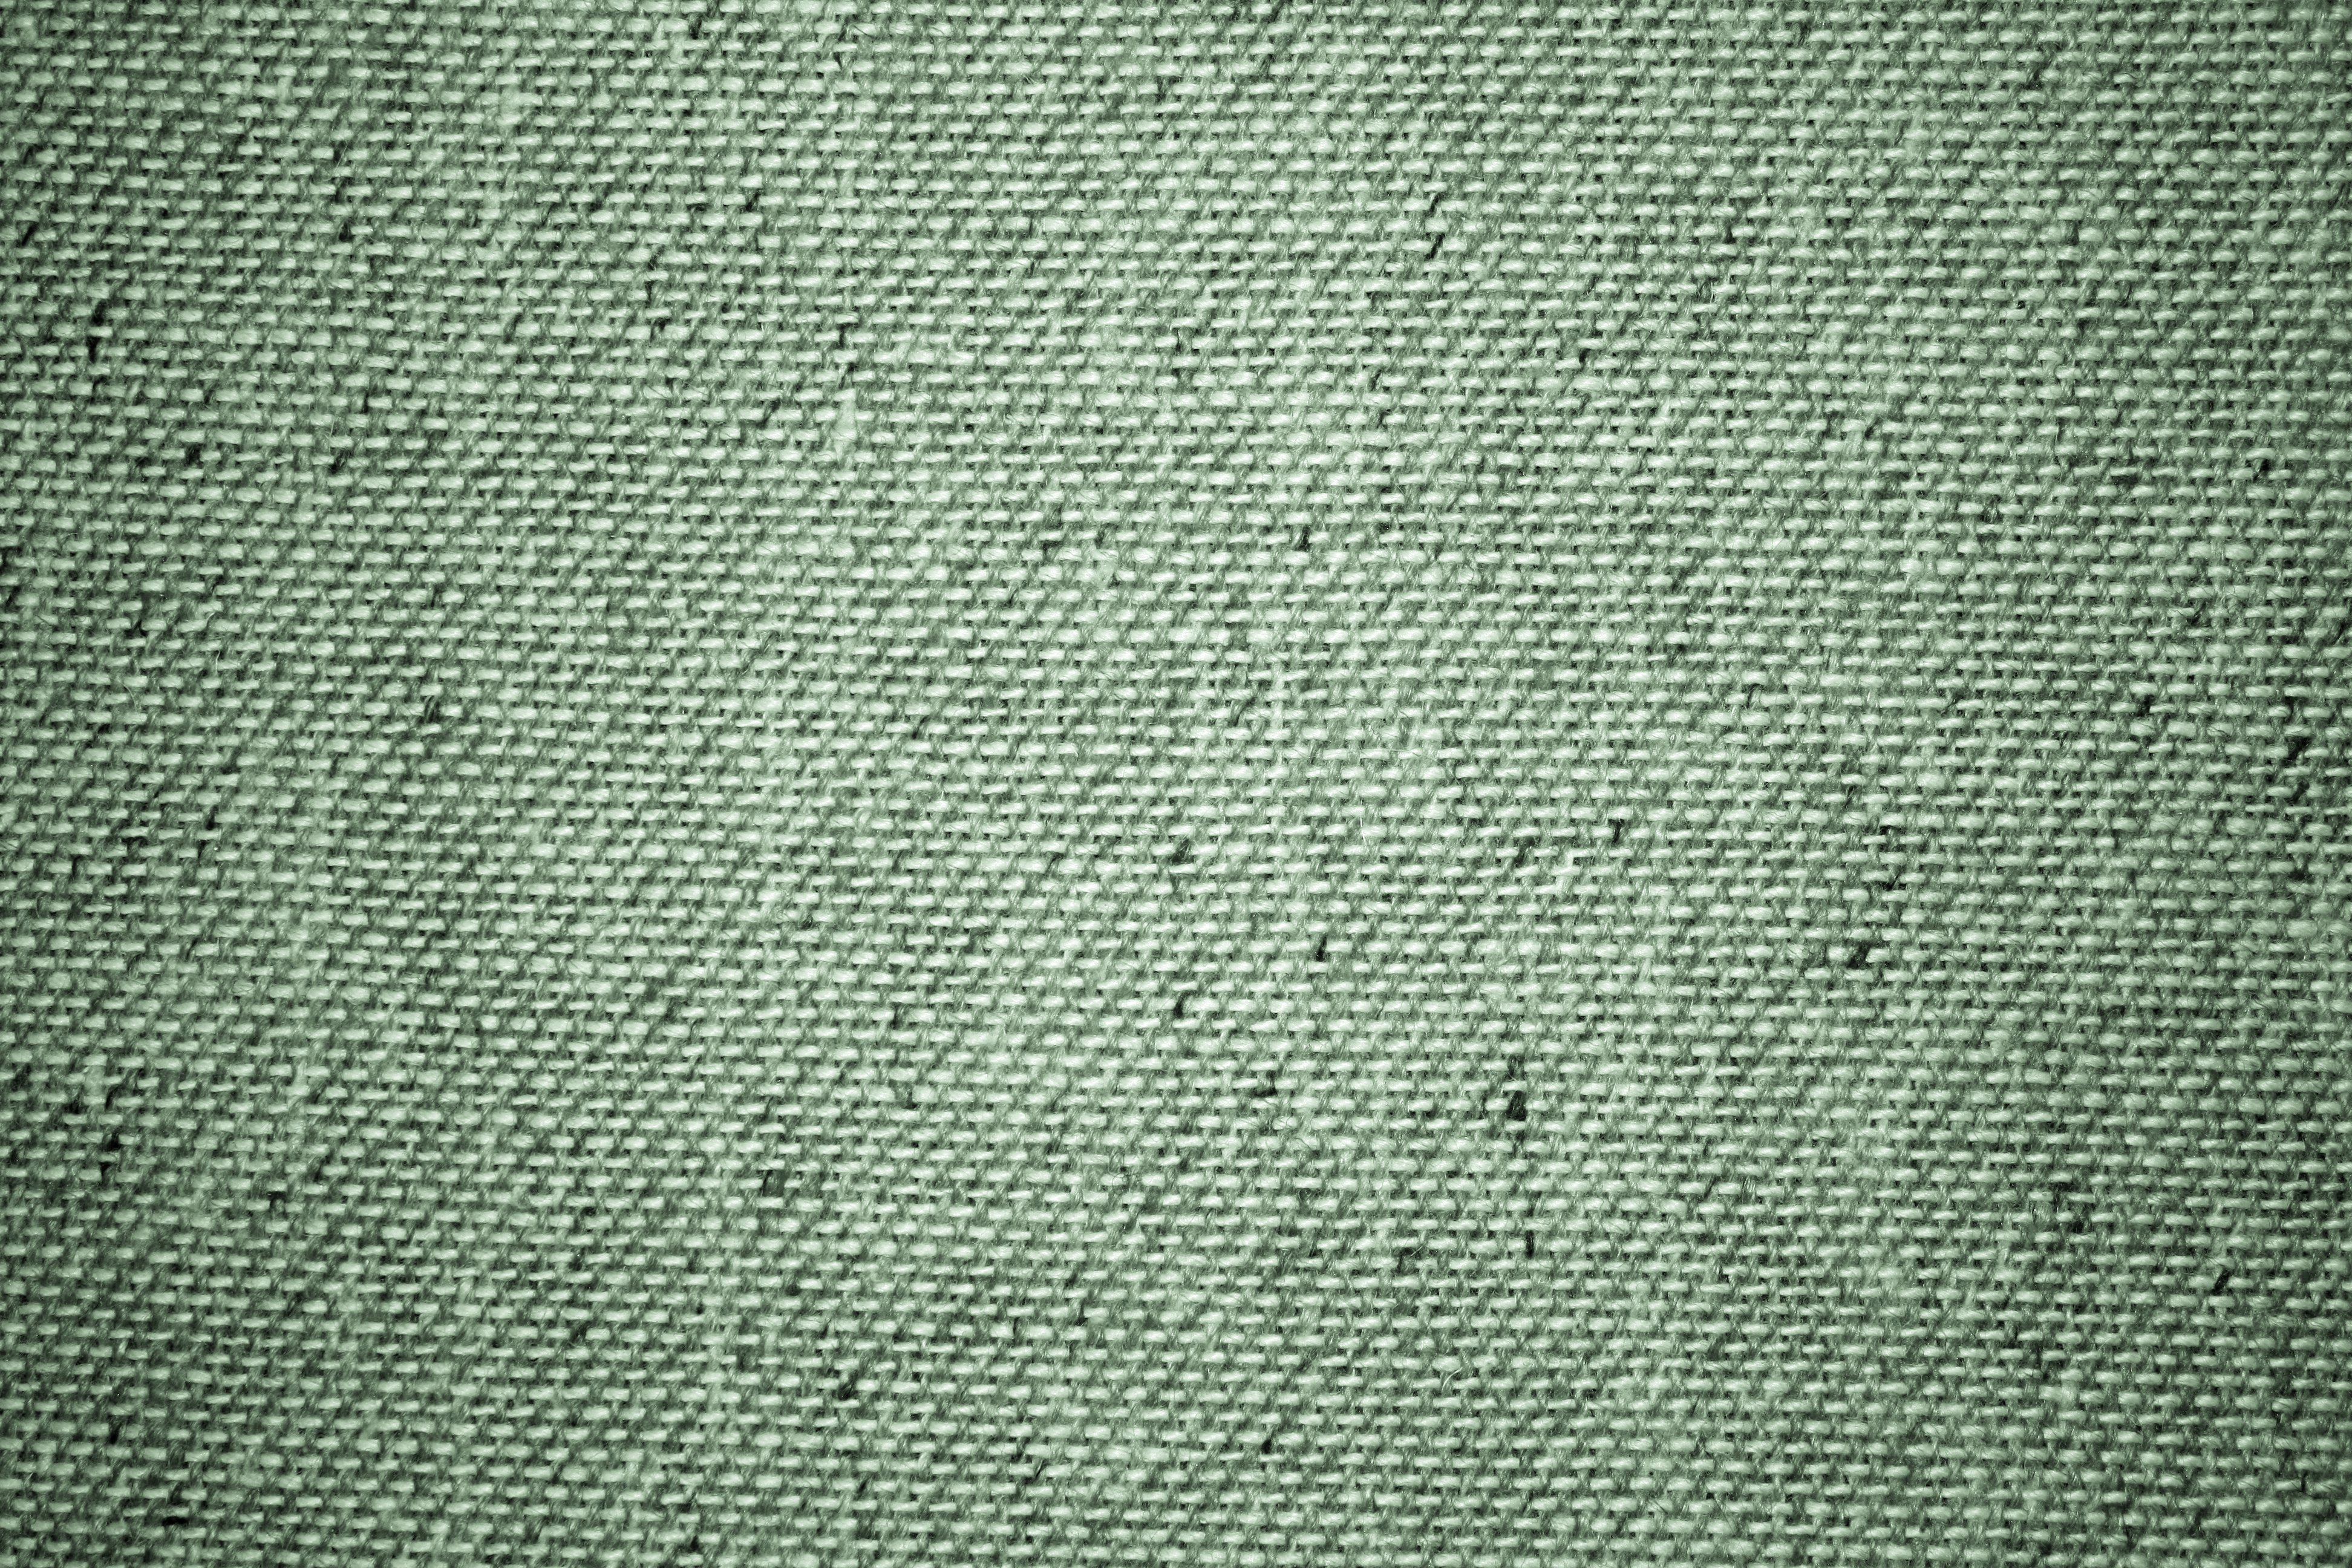 Sage Green Upholstery Fabric Close Up Texture Picture Free Photograph Photos Public Domain